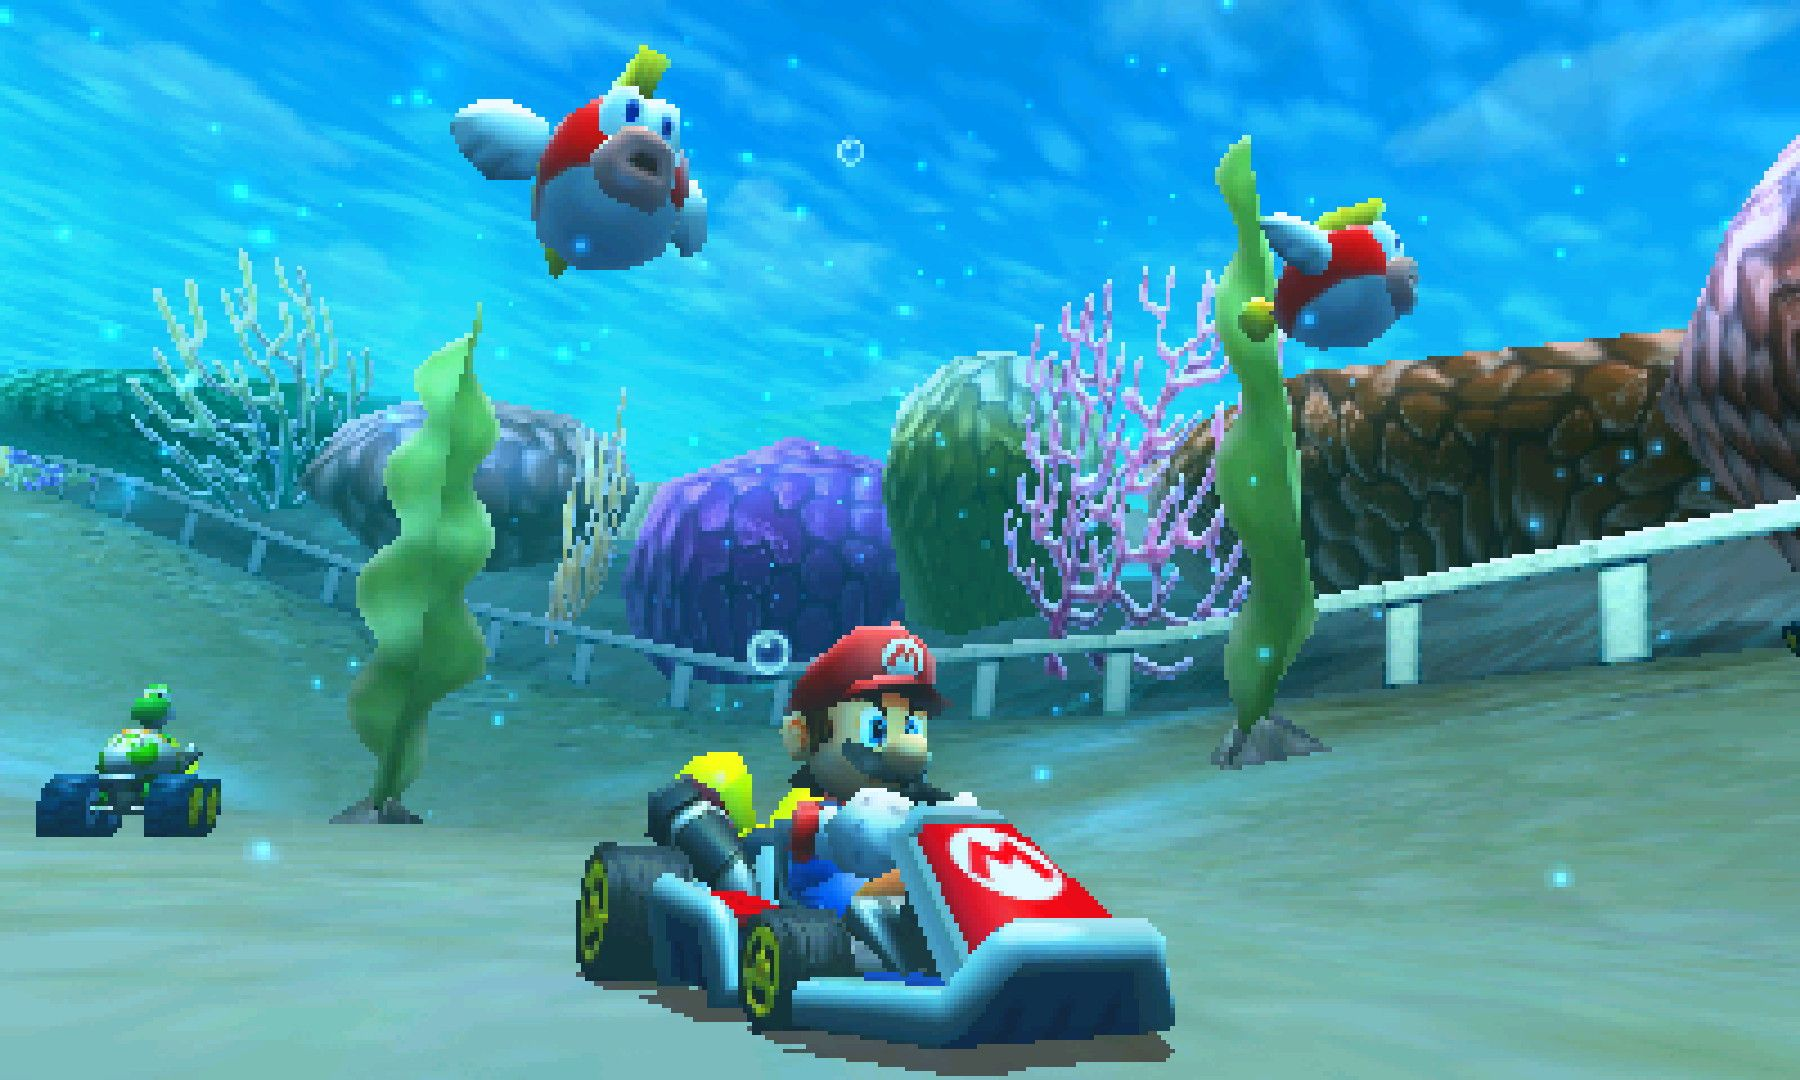 Nintendo 'Mario Kart' headed to smartphones with 'Mario Kart Tour'